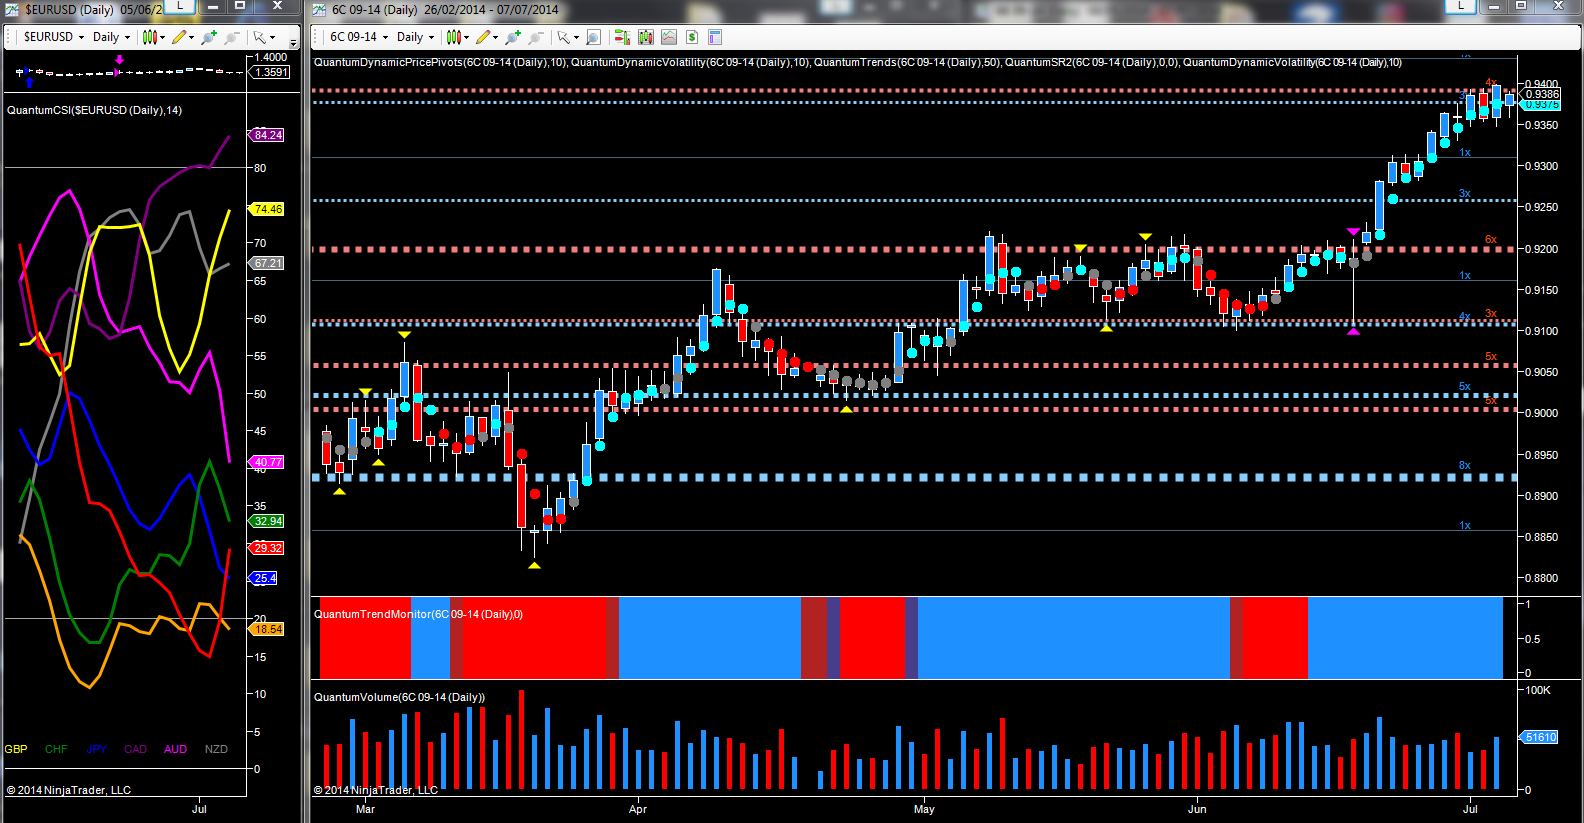 CAD/USD daily chart - September futures